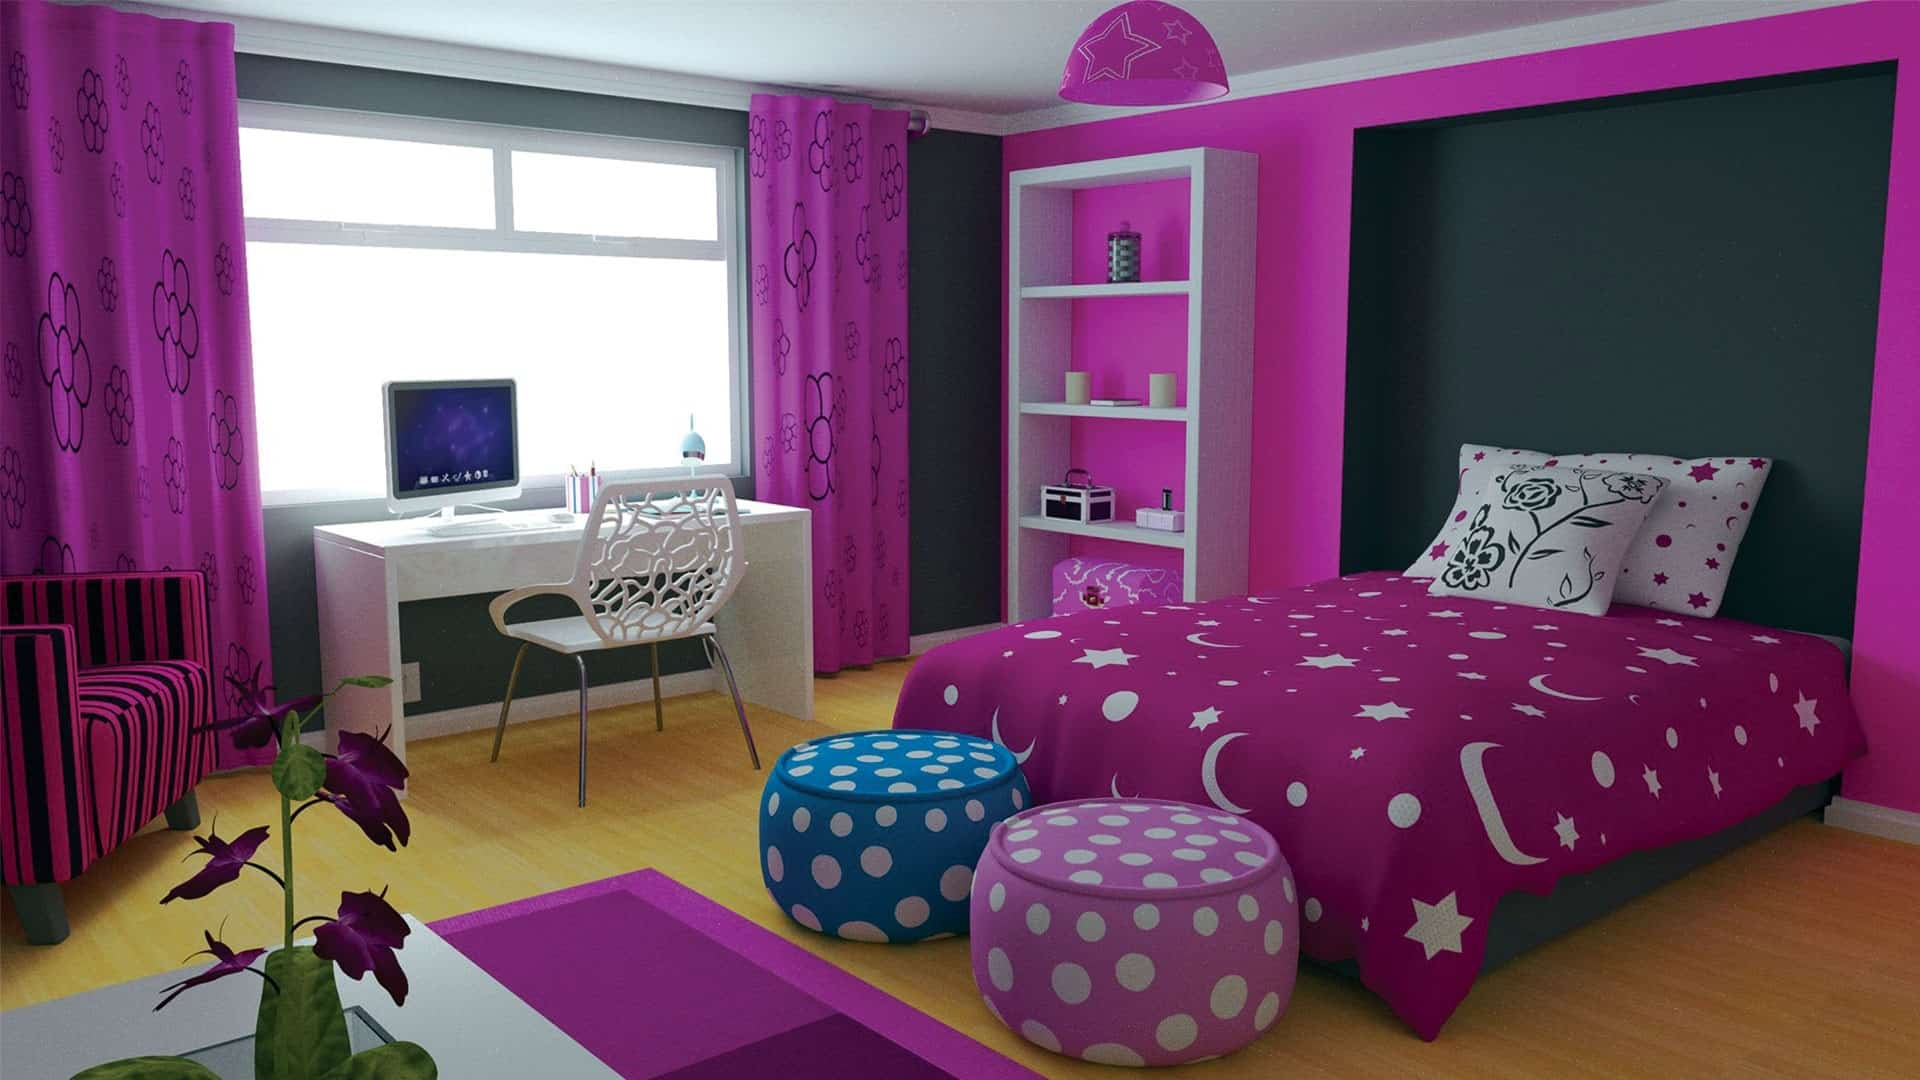 How To Decorate A Small Bedroom For A Teenager Home Decor Trends 2017 Purple Teen Room